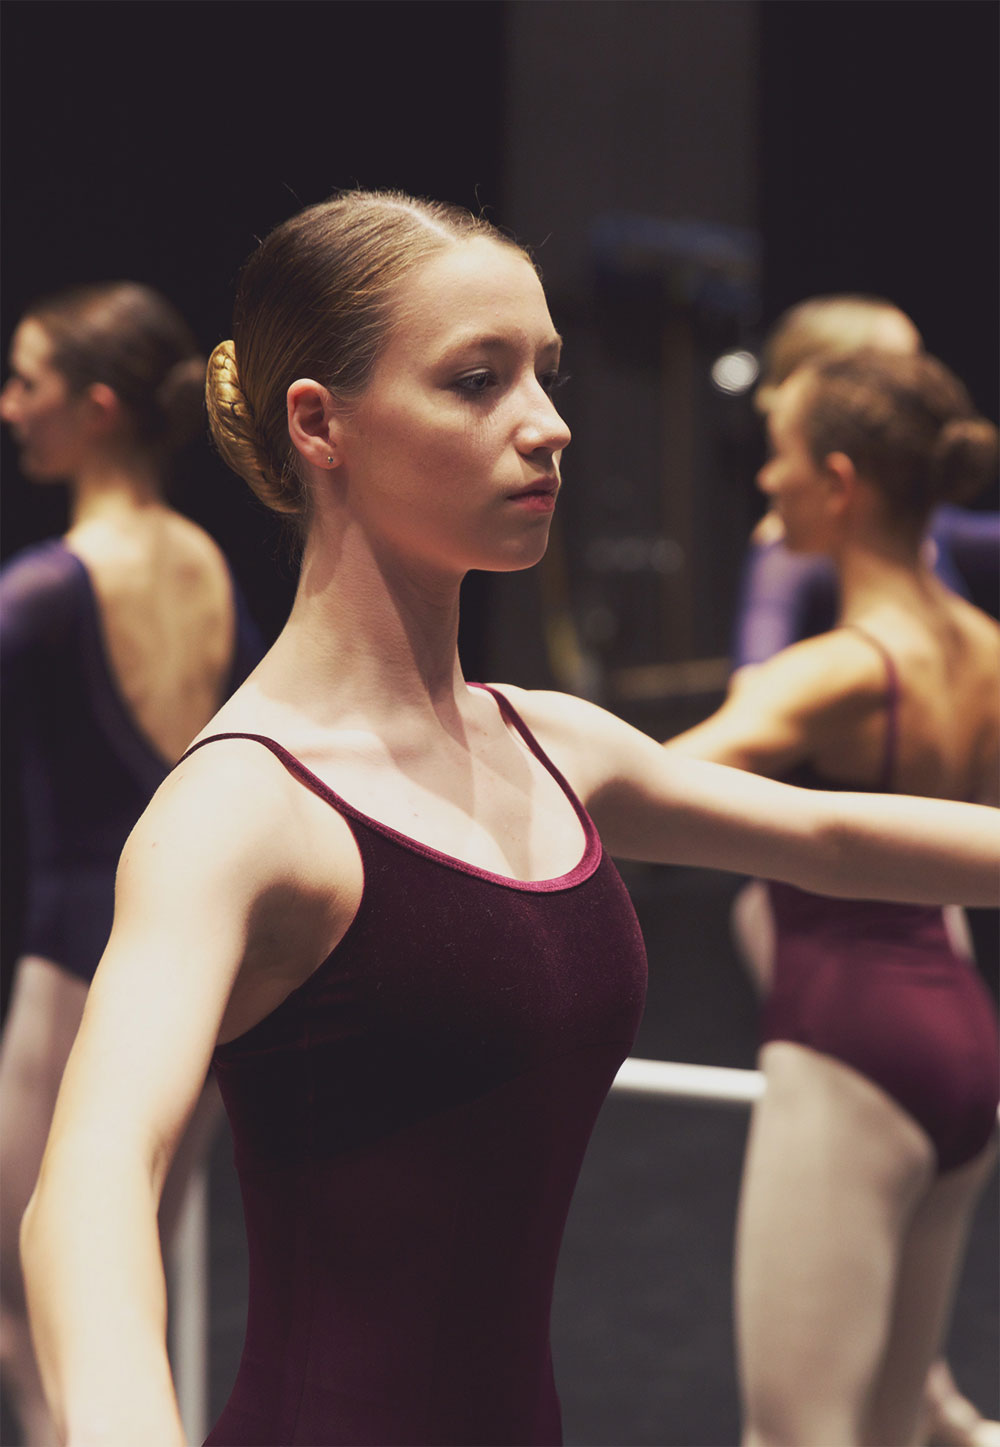 Professional Program - Barre Close-up